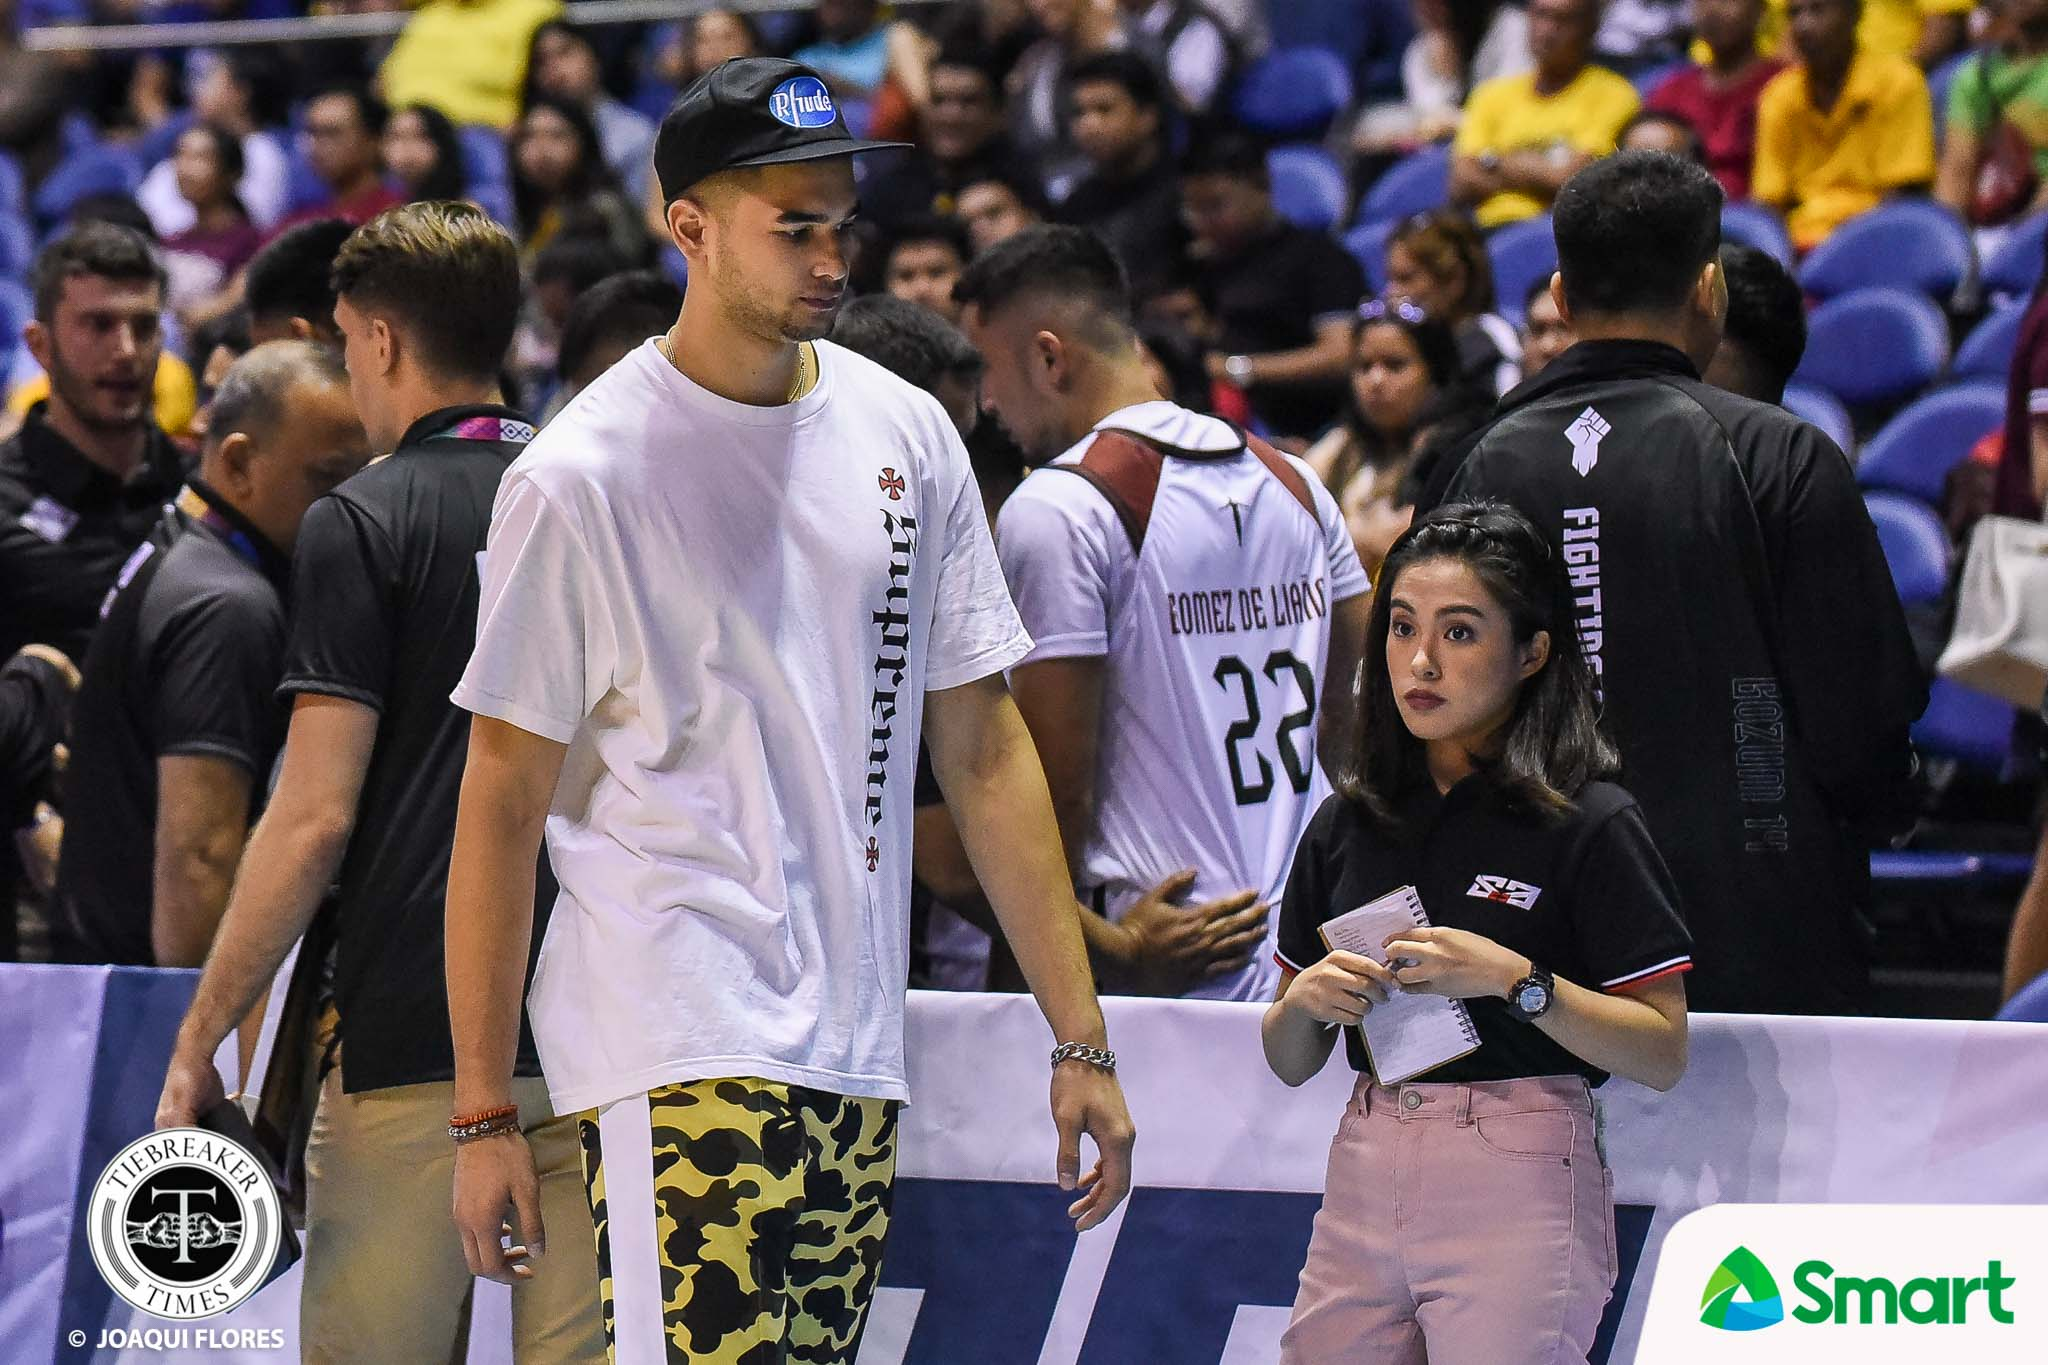 Tiebreaker Times Kobe Paras remains day-to-day due to right ankle sprain Basketball News UAAP UP  UP Men's Basketball UAAP Season 82 Men's Basketball UAAP Season 82 Kobe Paras Bo Perasol